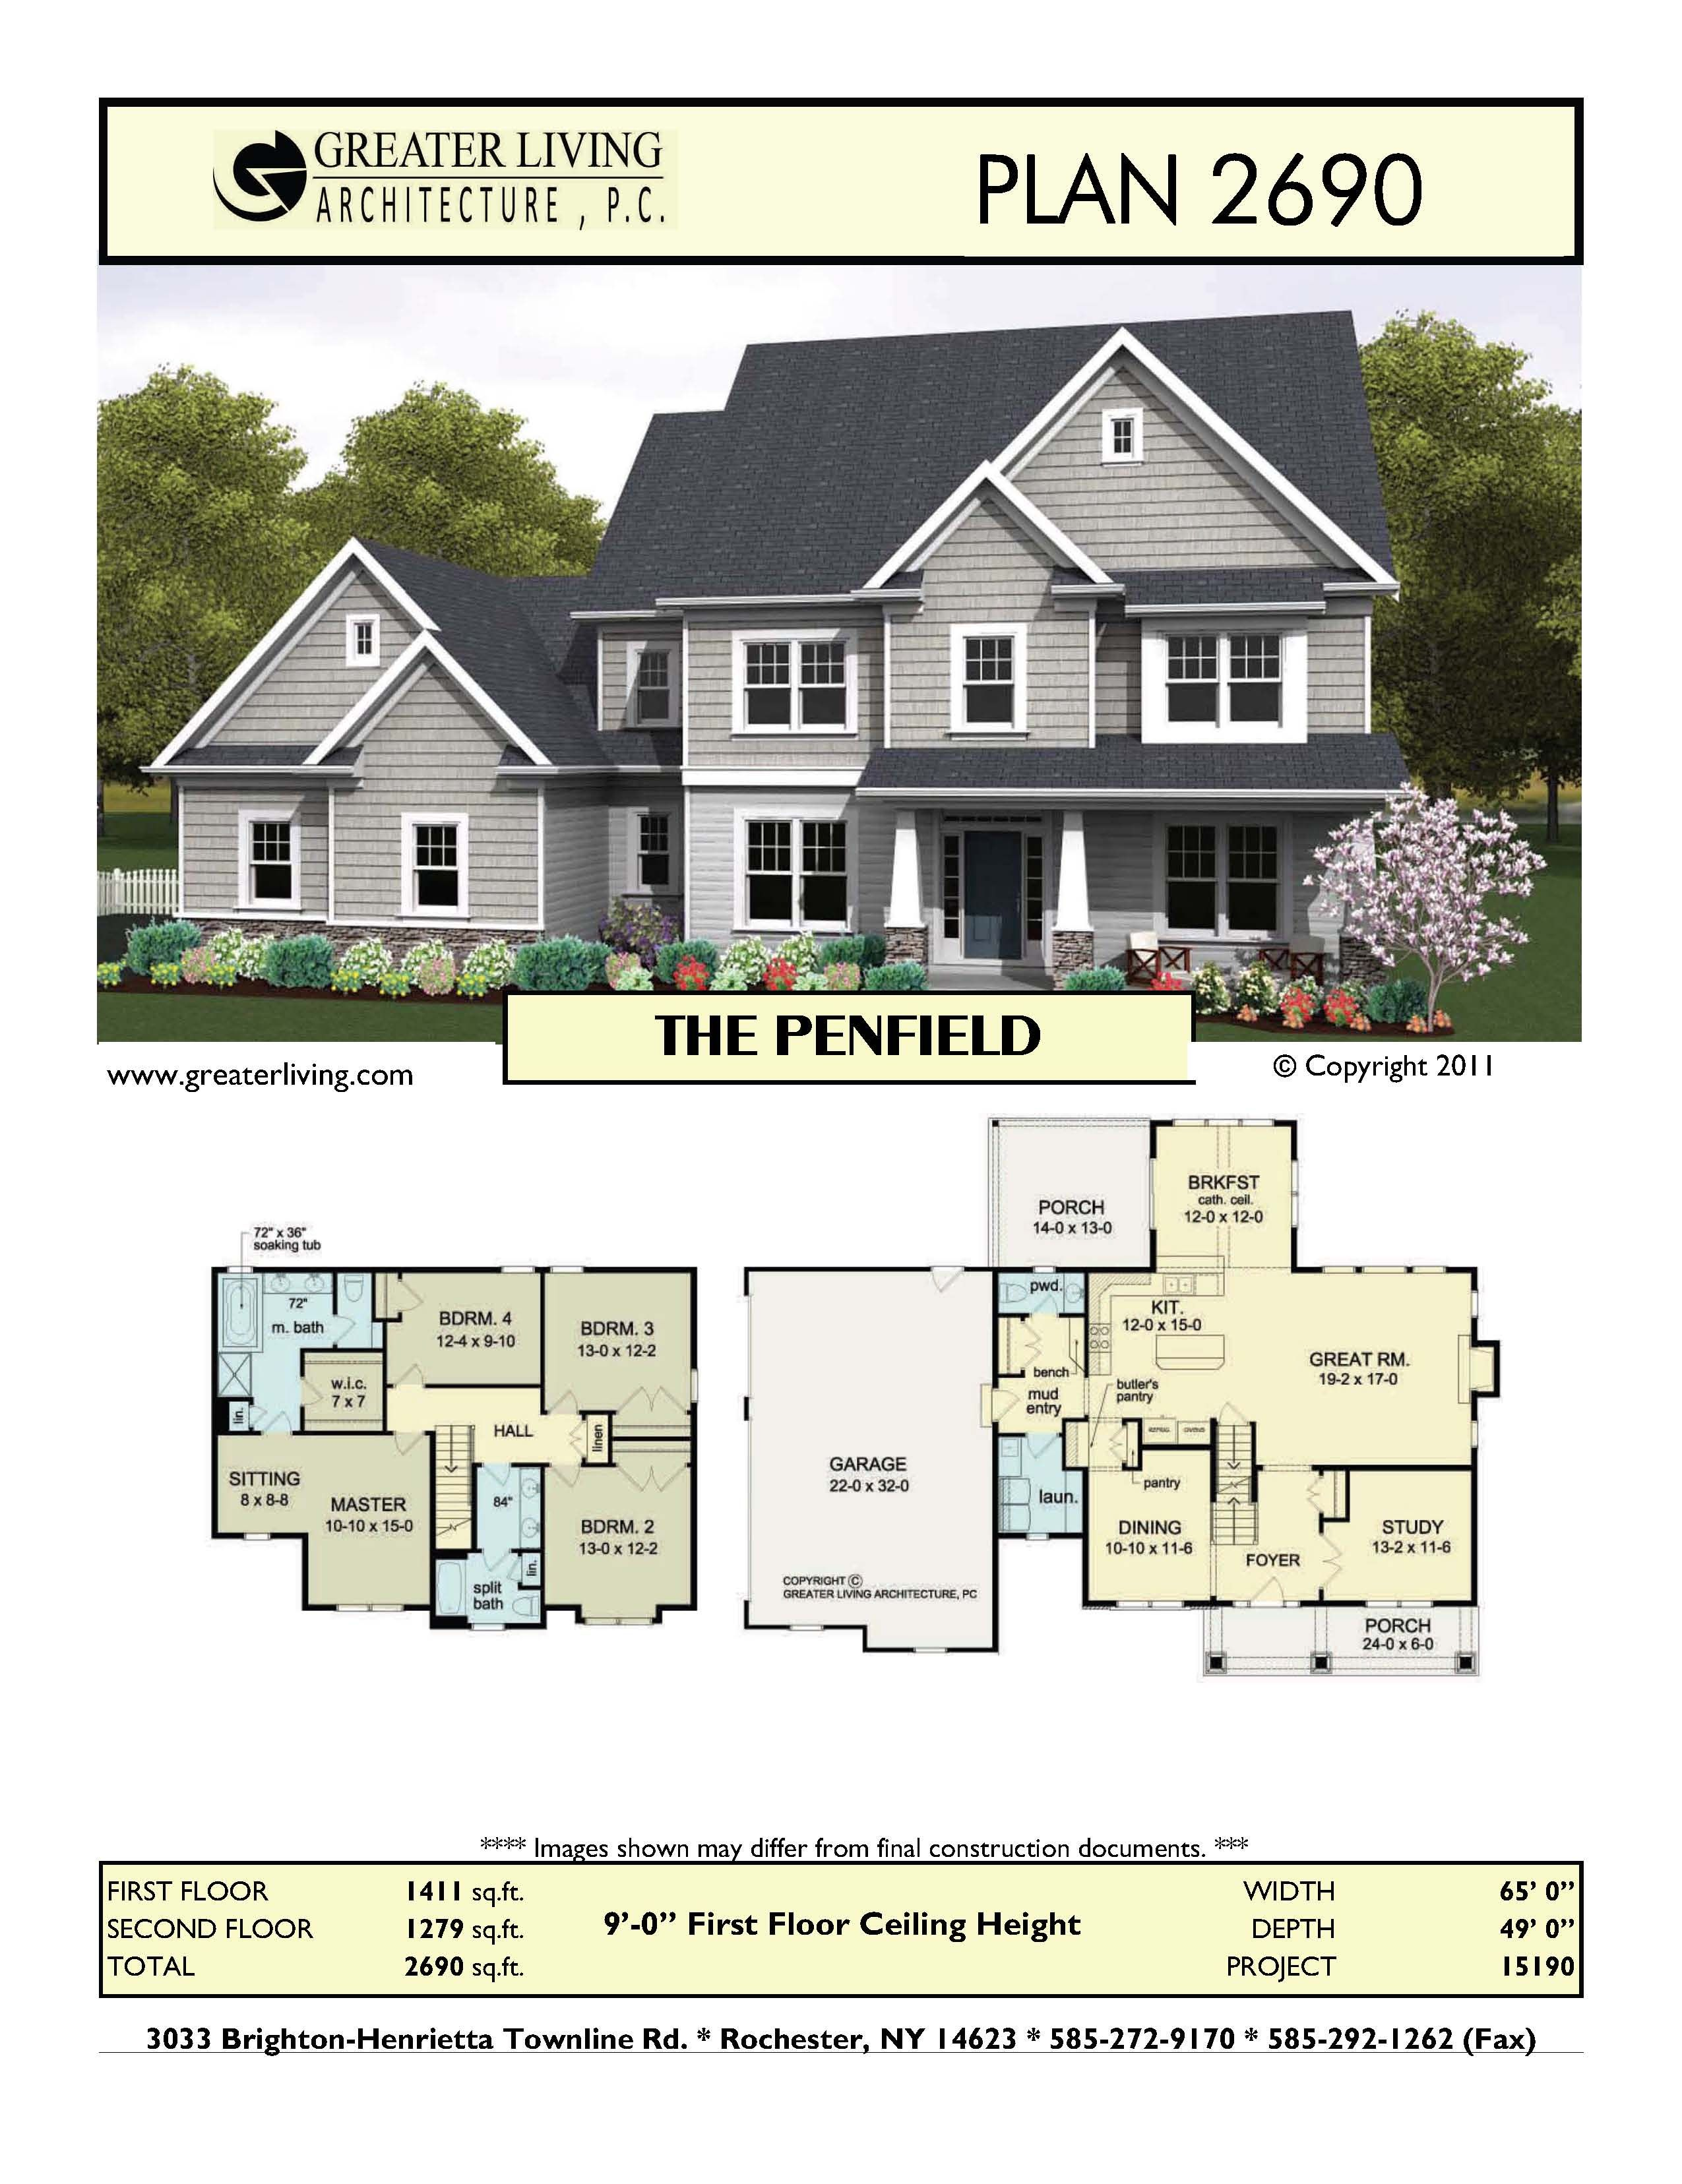 Plan 2690 THE PENFIELD (With images) Family house plans